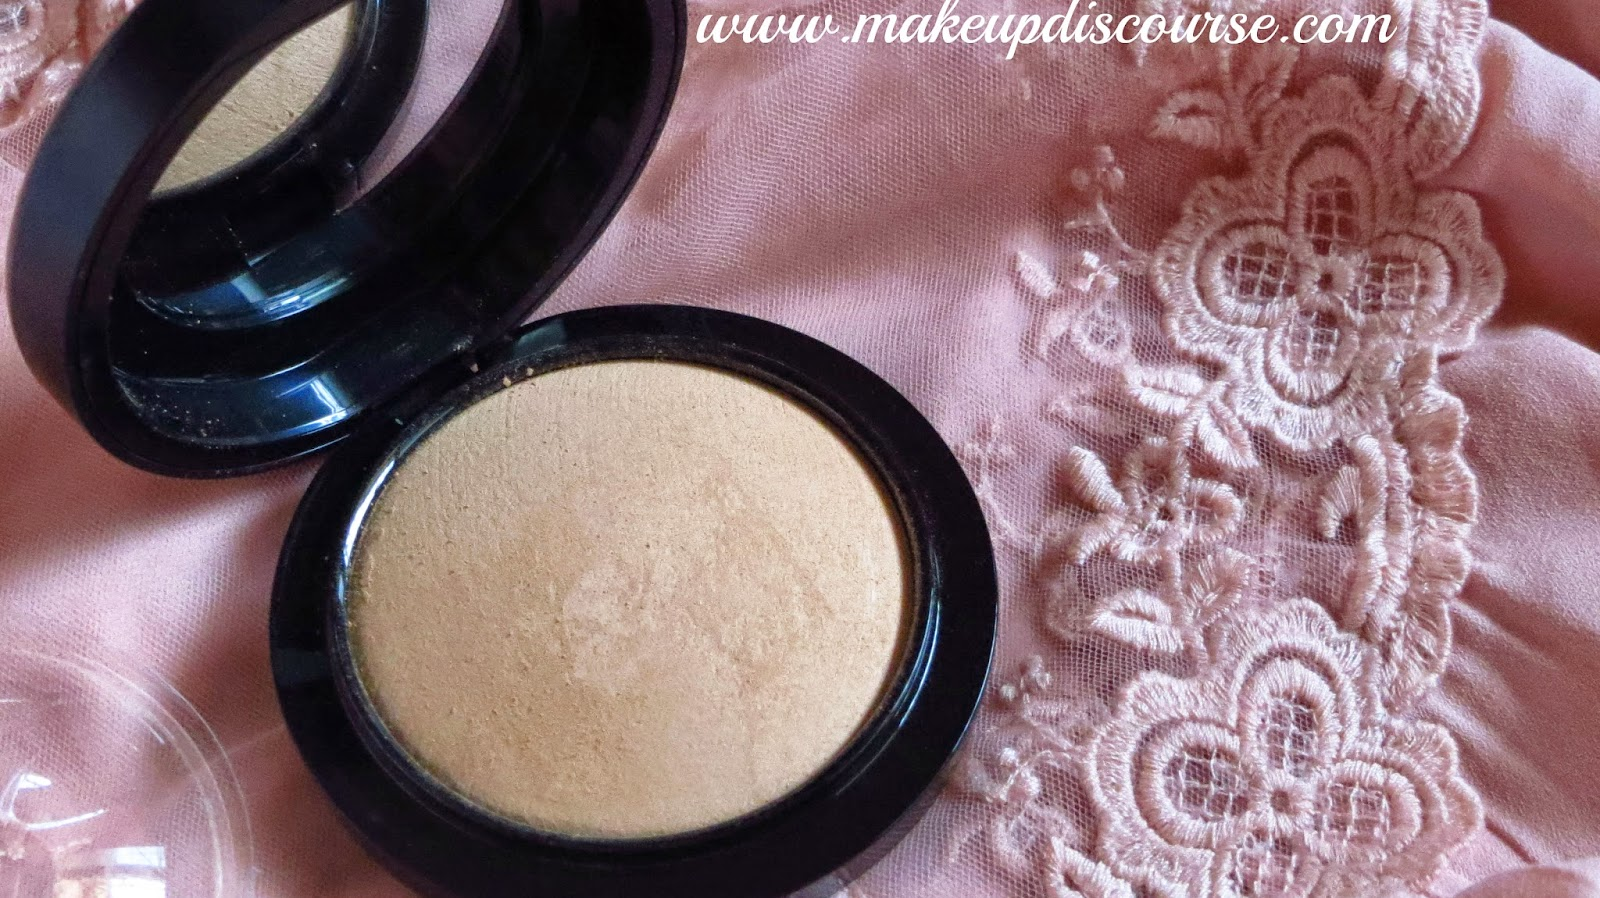 MAC Mineralize Skin Finish Natural Price in India